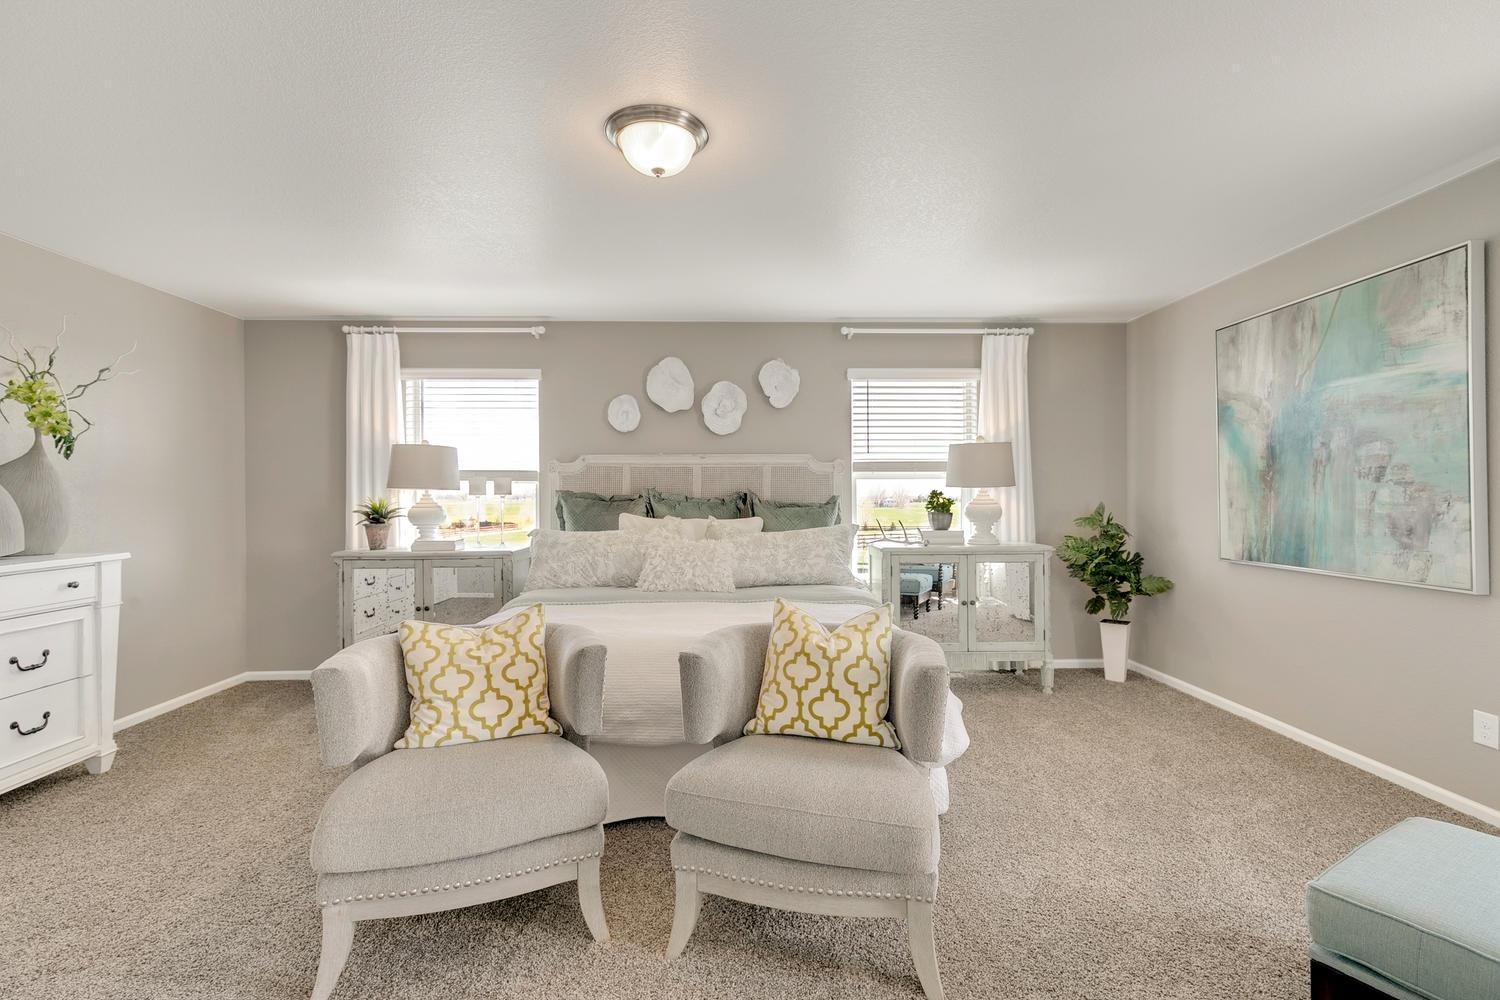 Bedroom featured in the HERRING By D.R. Horton in Fort Collins-Loveland, CO